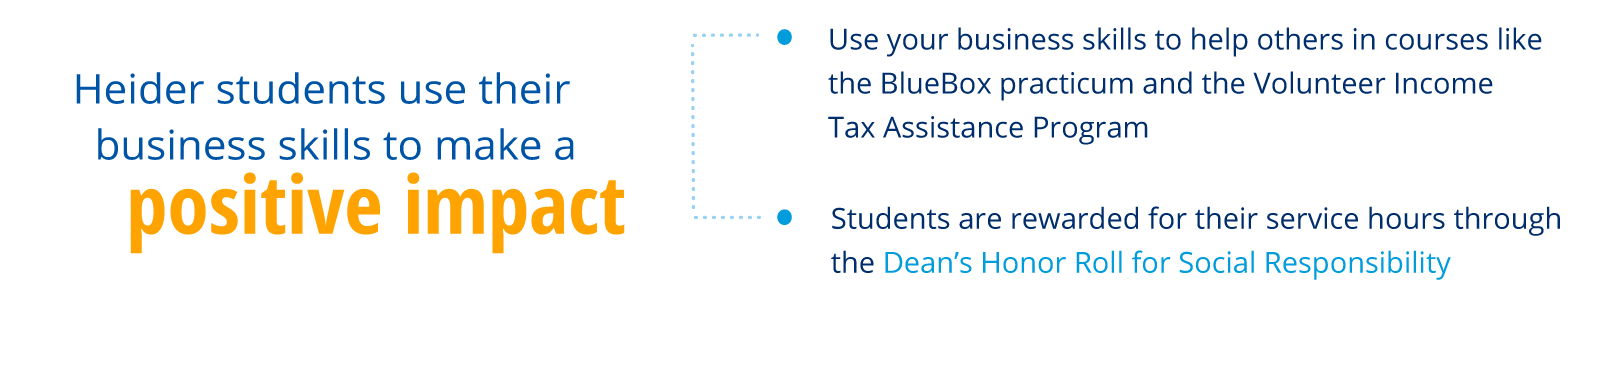 Heider students use their business skills to make a positive impact. Use your business skills to help others in courses like the BlueBox practicum and the Volunteer Income Tax Assistance Program. Students are rewarded for their service hours through the D